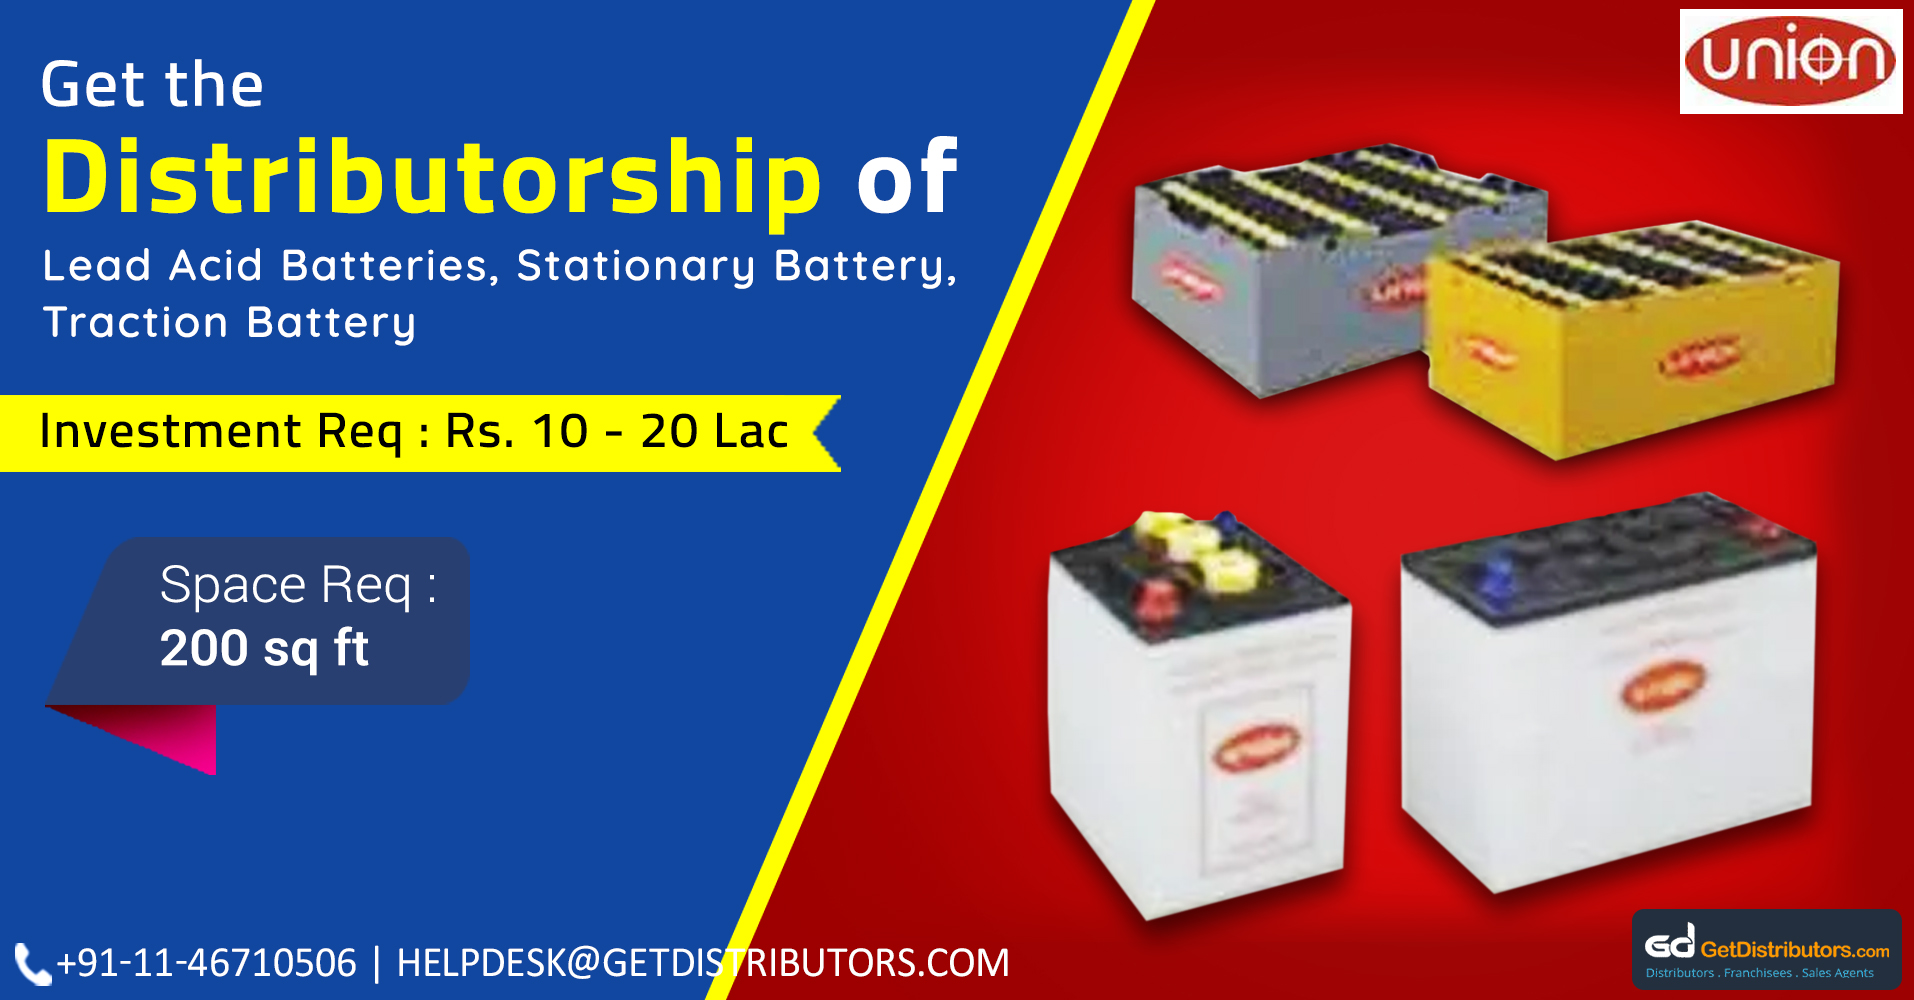 Reliable And Safe To Use Lead Acid Batteries